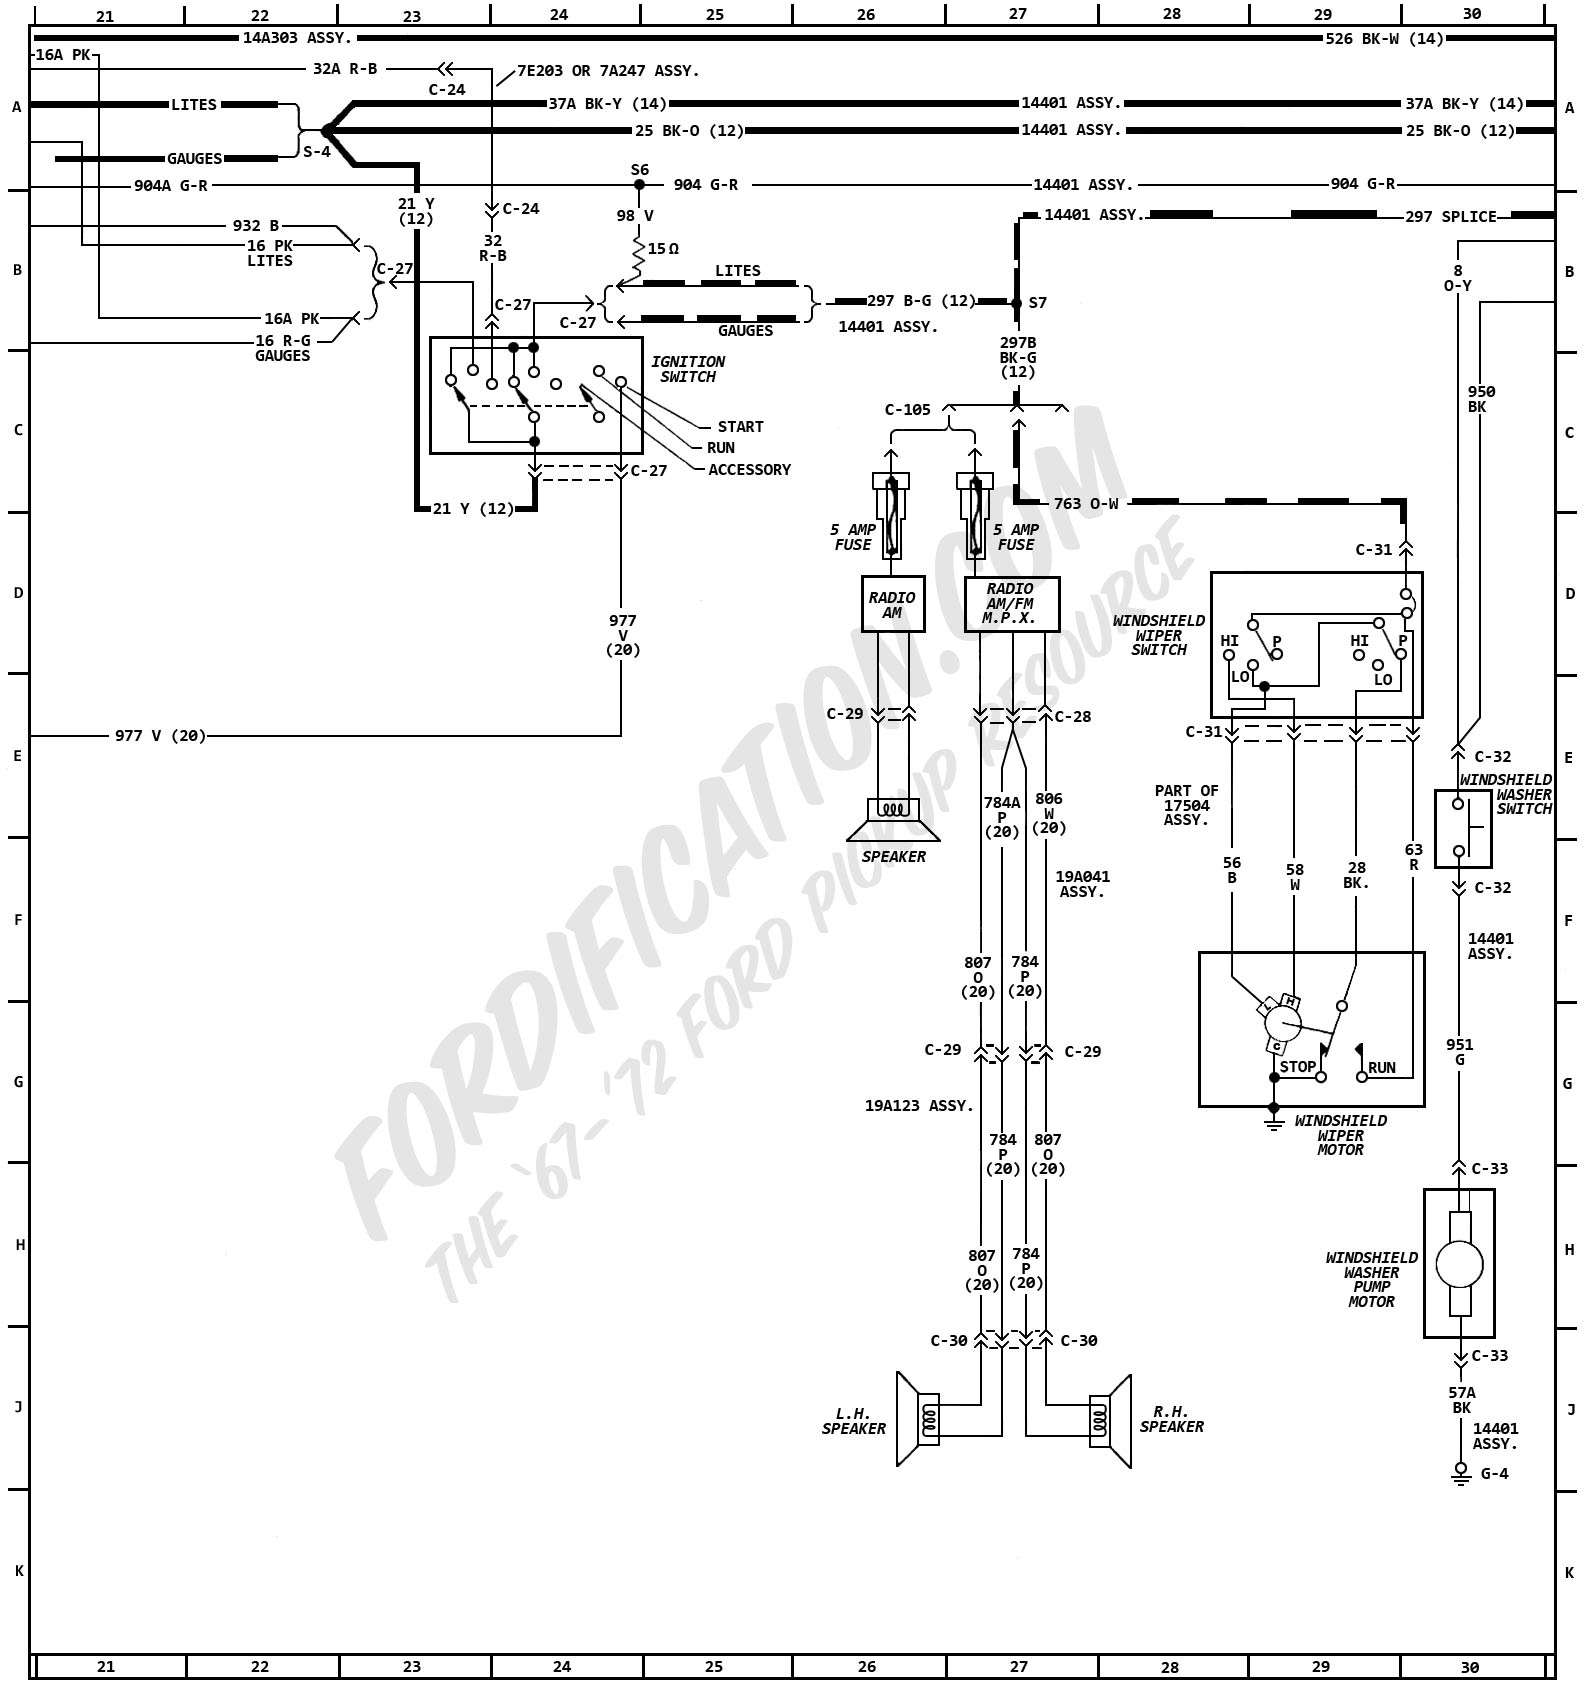 f100 ford radio wiring online circuit wiring diagram u2022 rh electrobuddha co uk 1974 ford maverick wiring diagram 1974 ford f250 wiring diagram